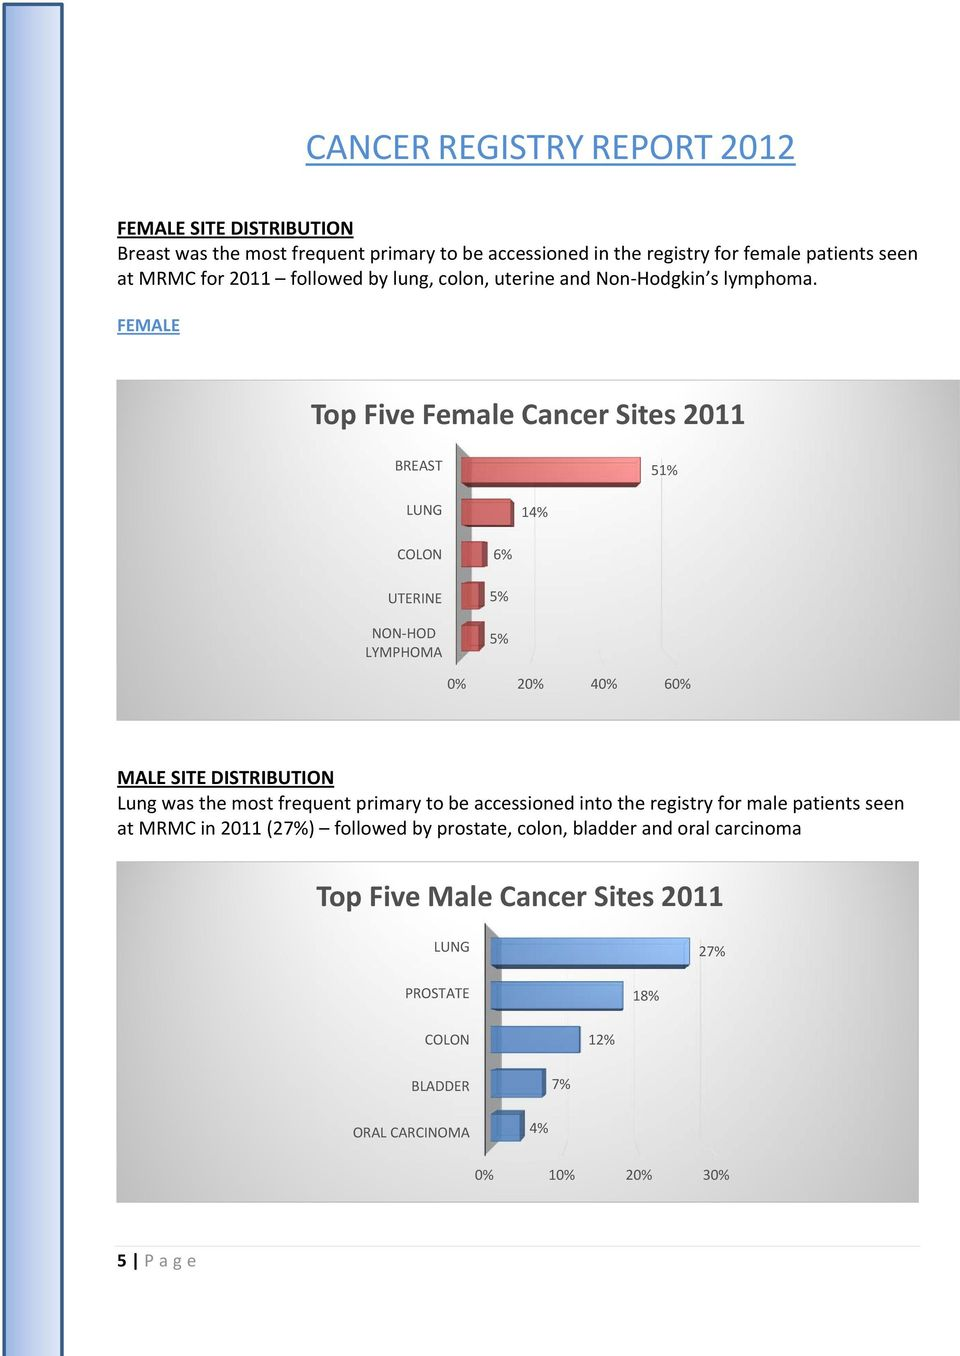 FEMALE Top Five Female Cancer Sites 2011 BREAST 51% LUNG 14% COLON UTERINE NON HOD LYMPHOMA 6% 5% 5% 0% 20% 40% 60% MALE SITE DISTRIBUTION Lung was the most